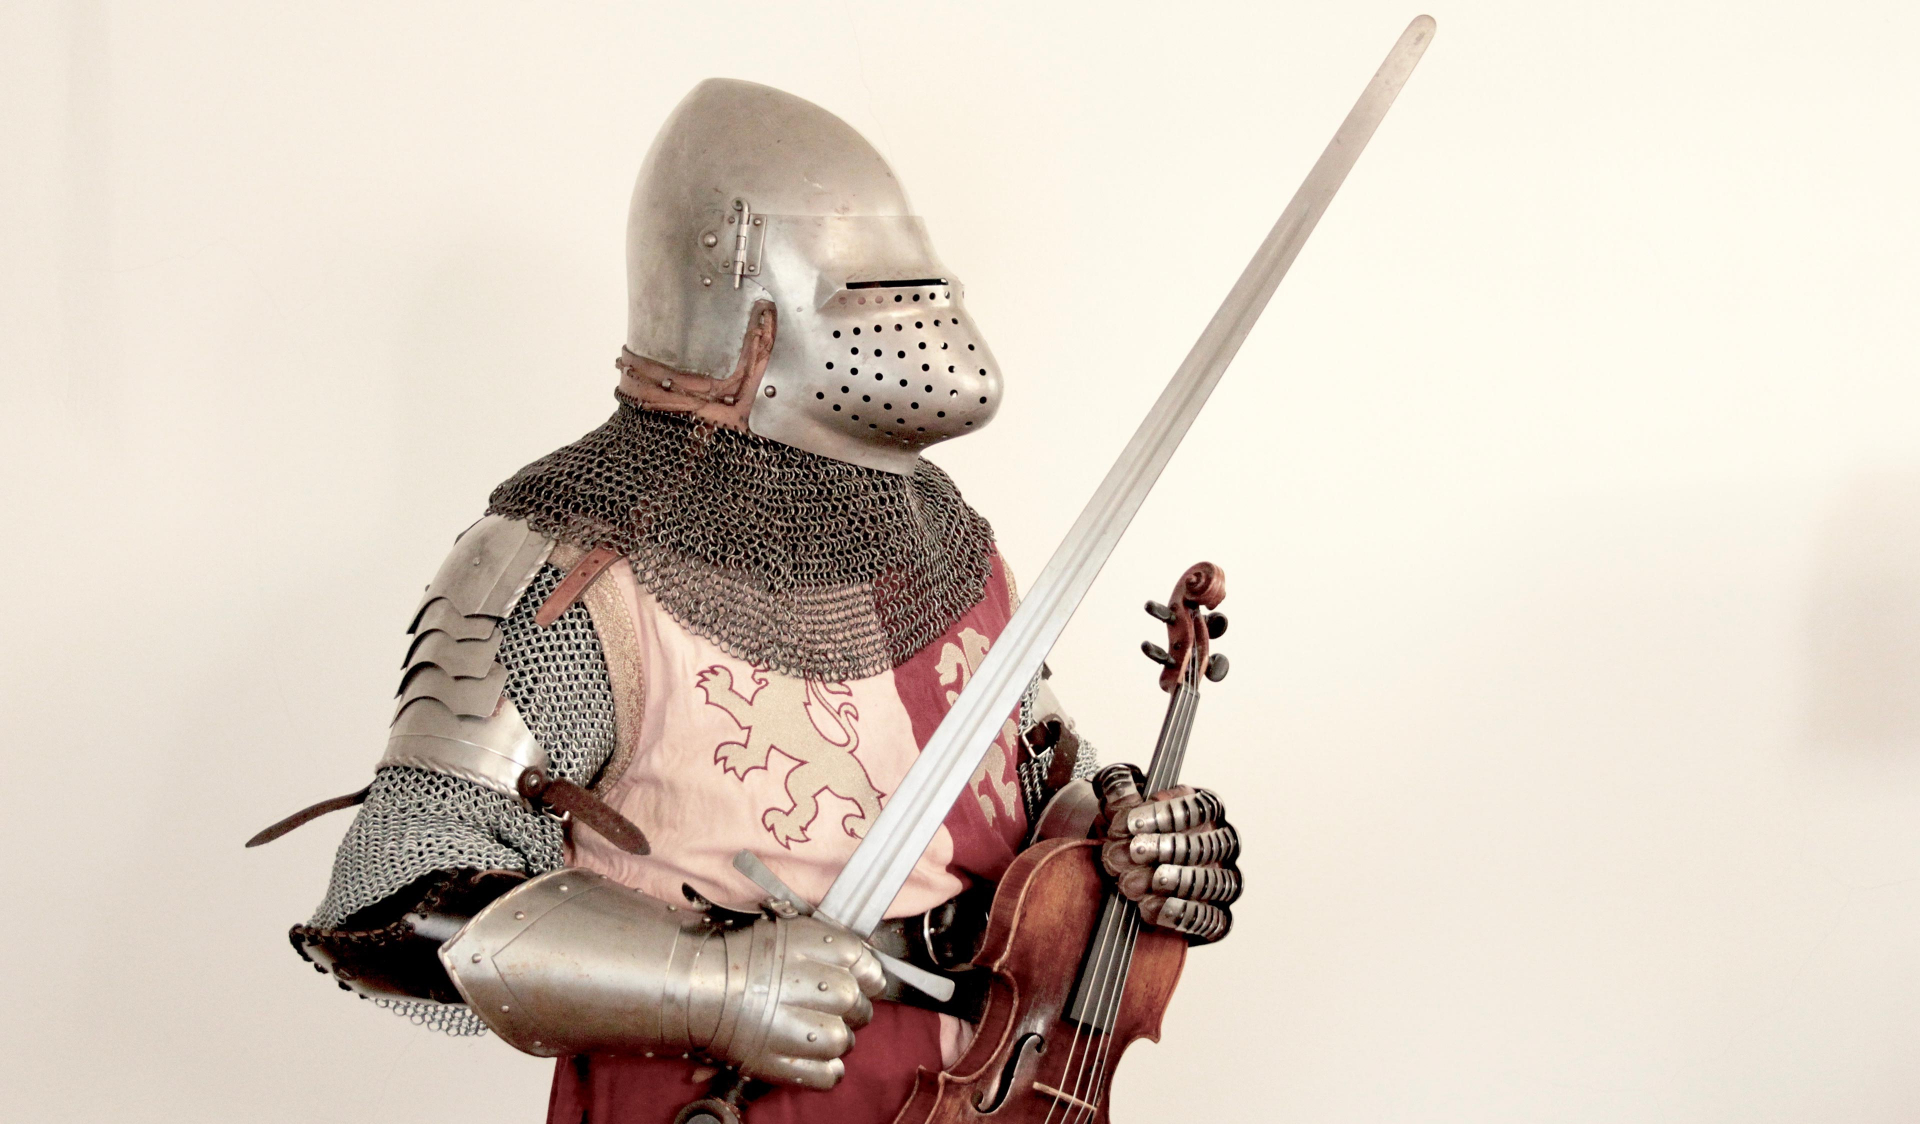 A knight's armor with a violin and a sword